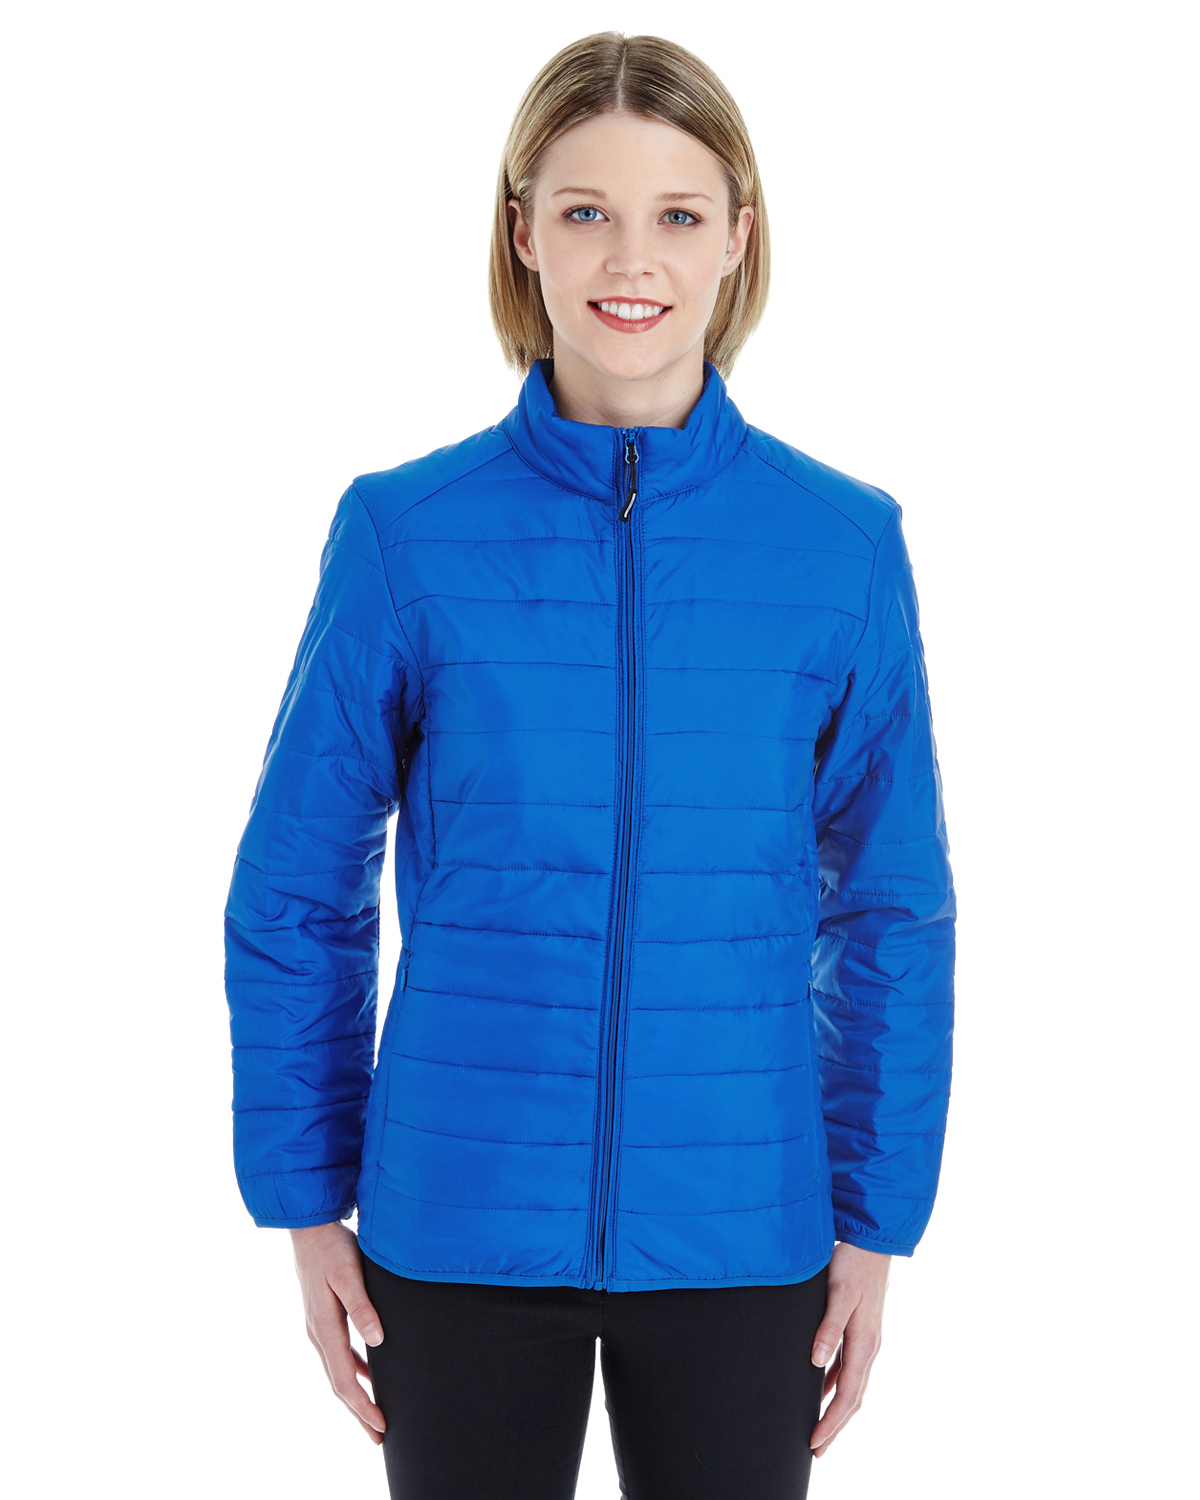 Ash City CE700W - Ladies' Prevail Packable Puffer